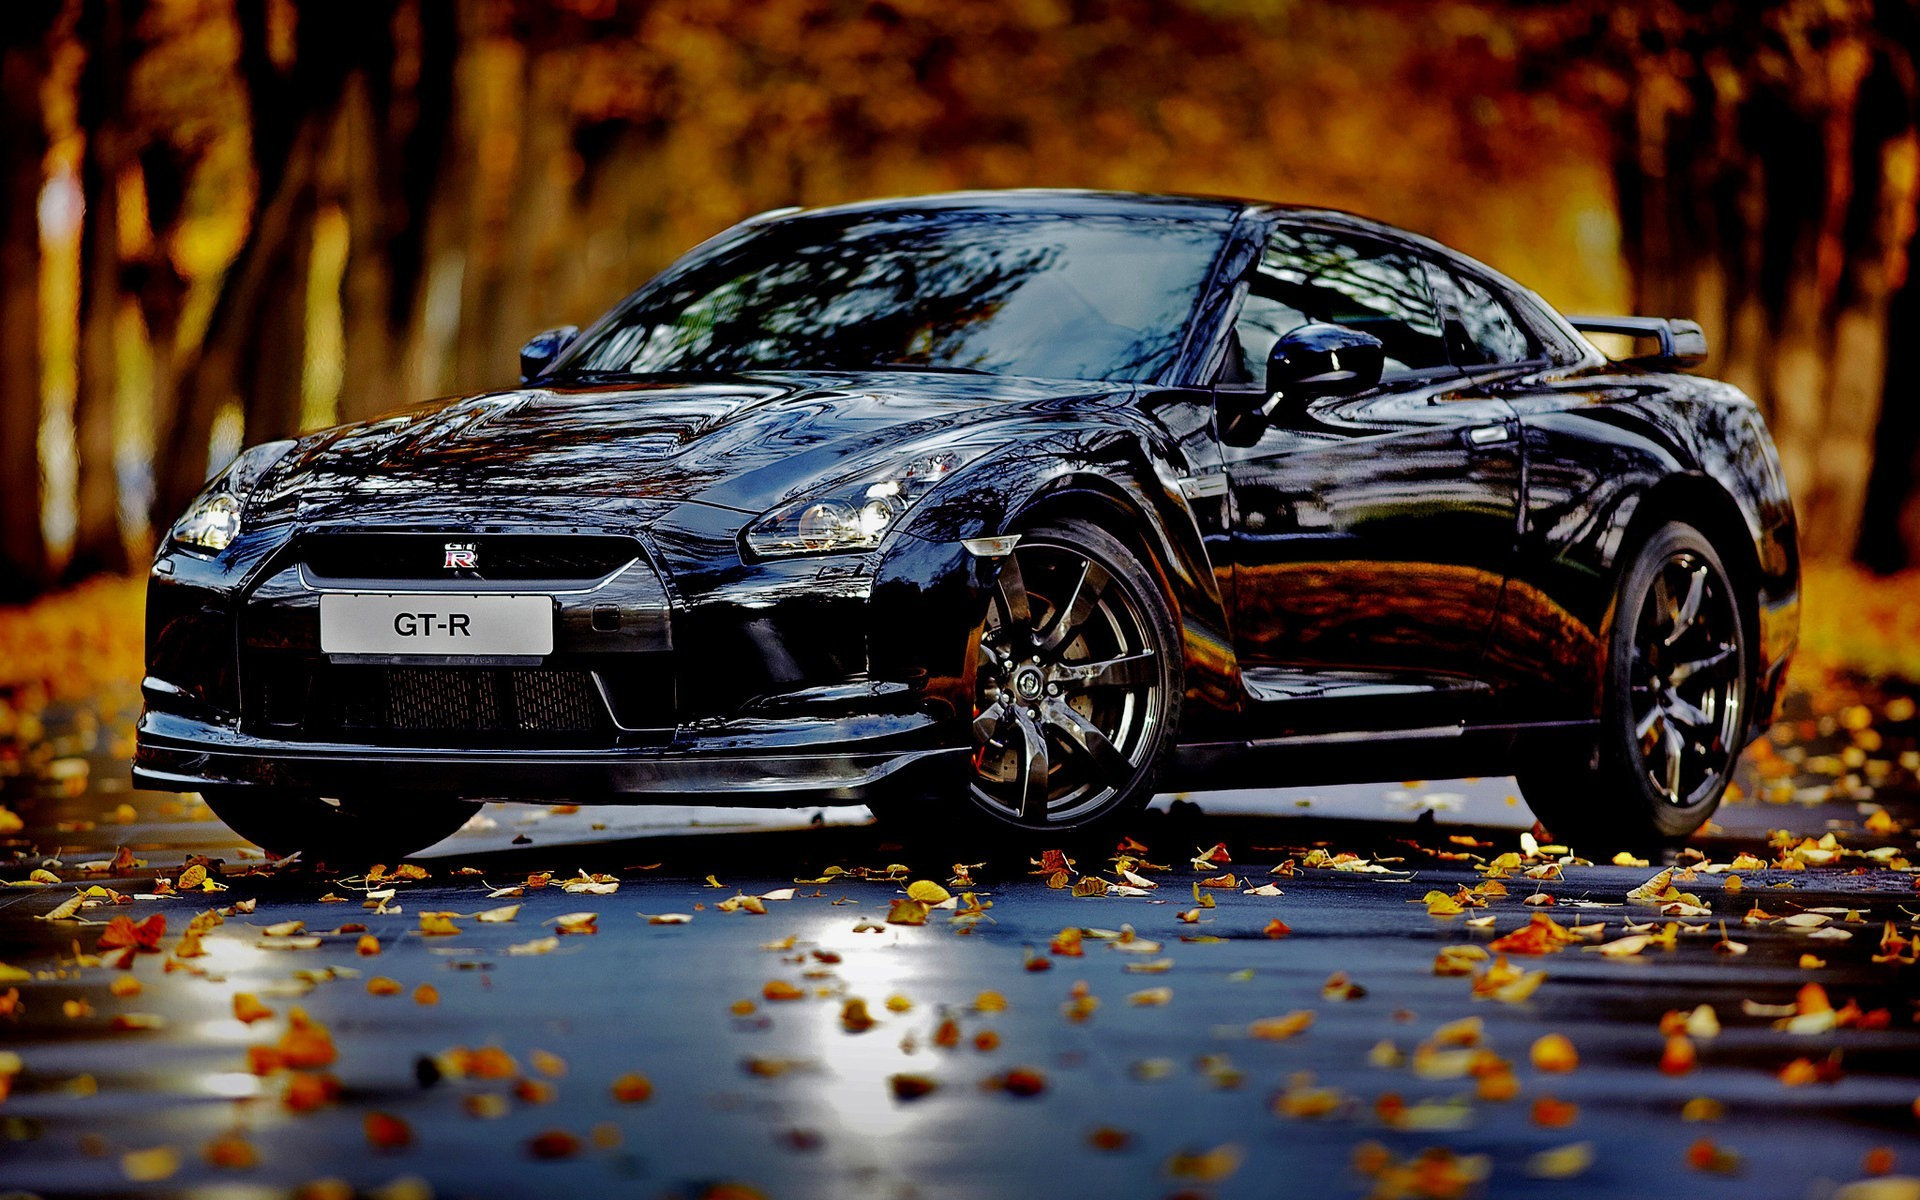 Res: 1920x1200, Humphrey__13 images Nissan GT-R wallpapers. HD wallpaper and background  photos